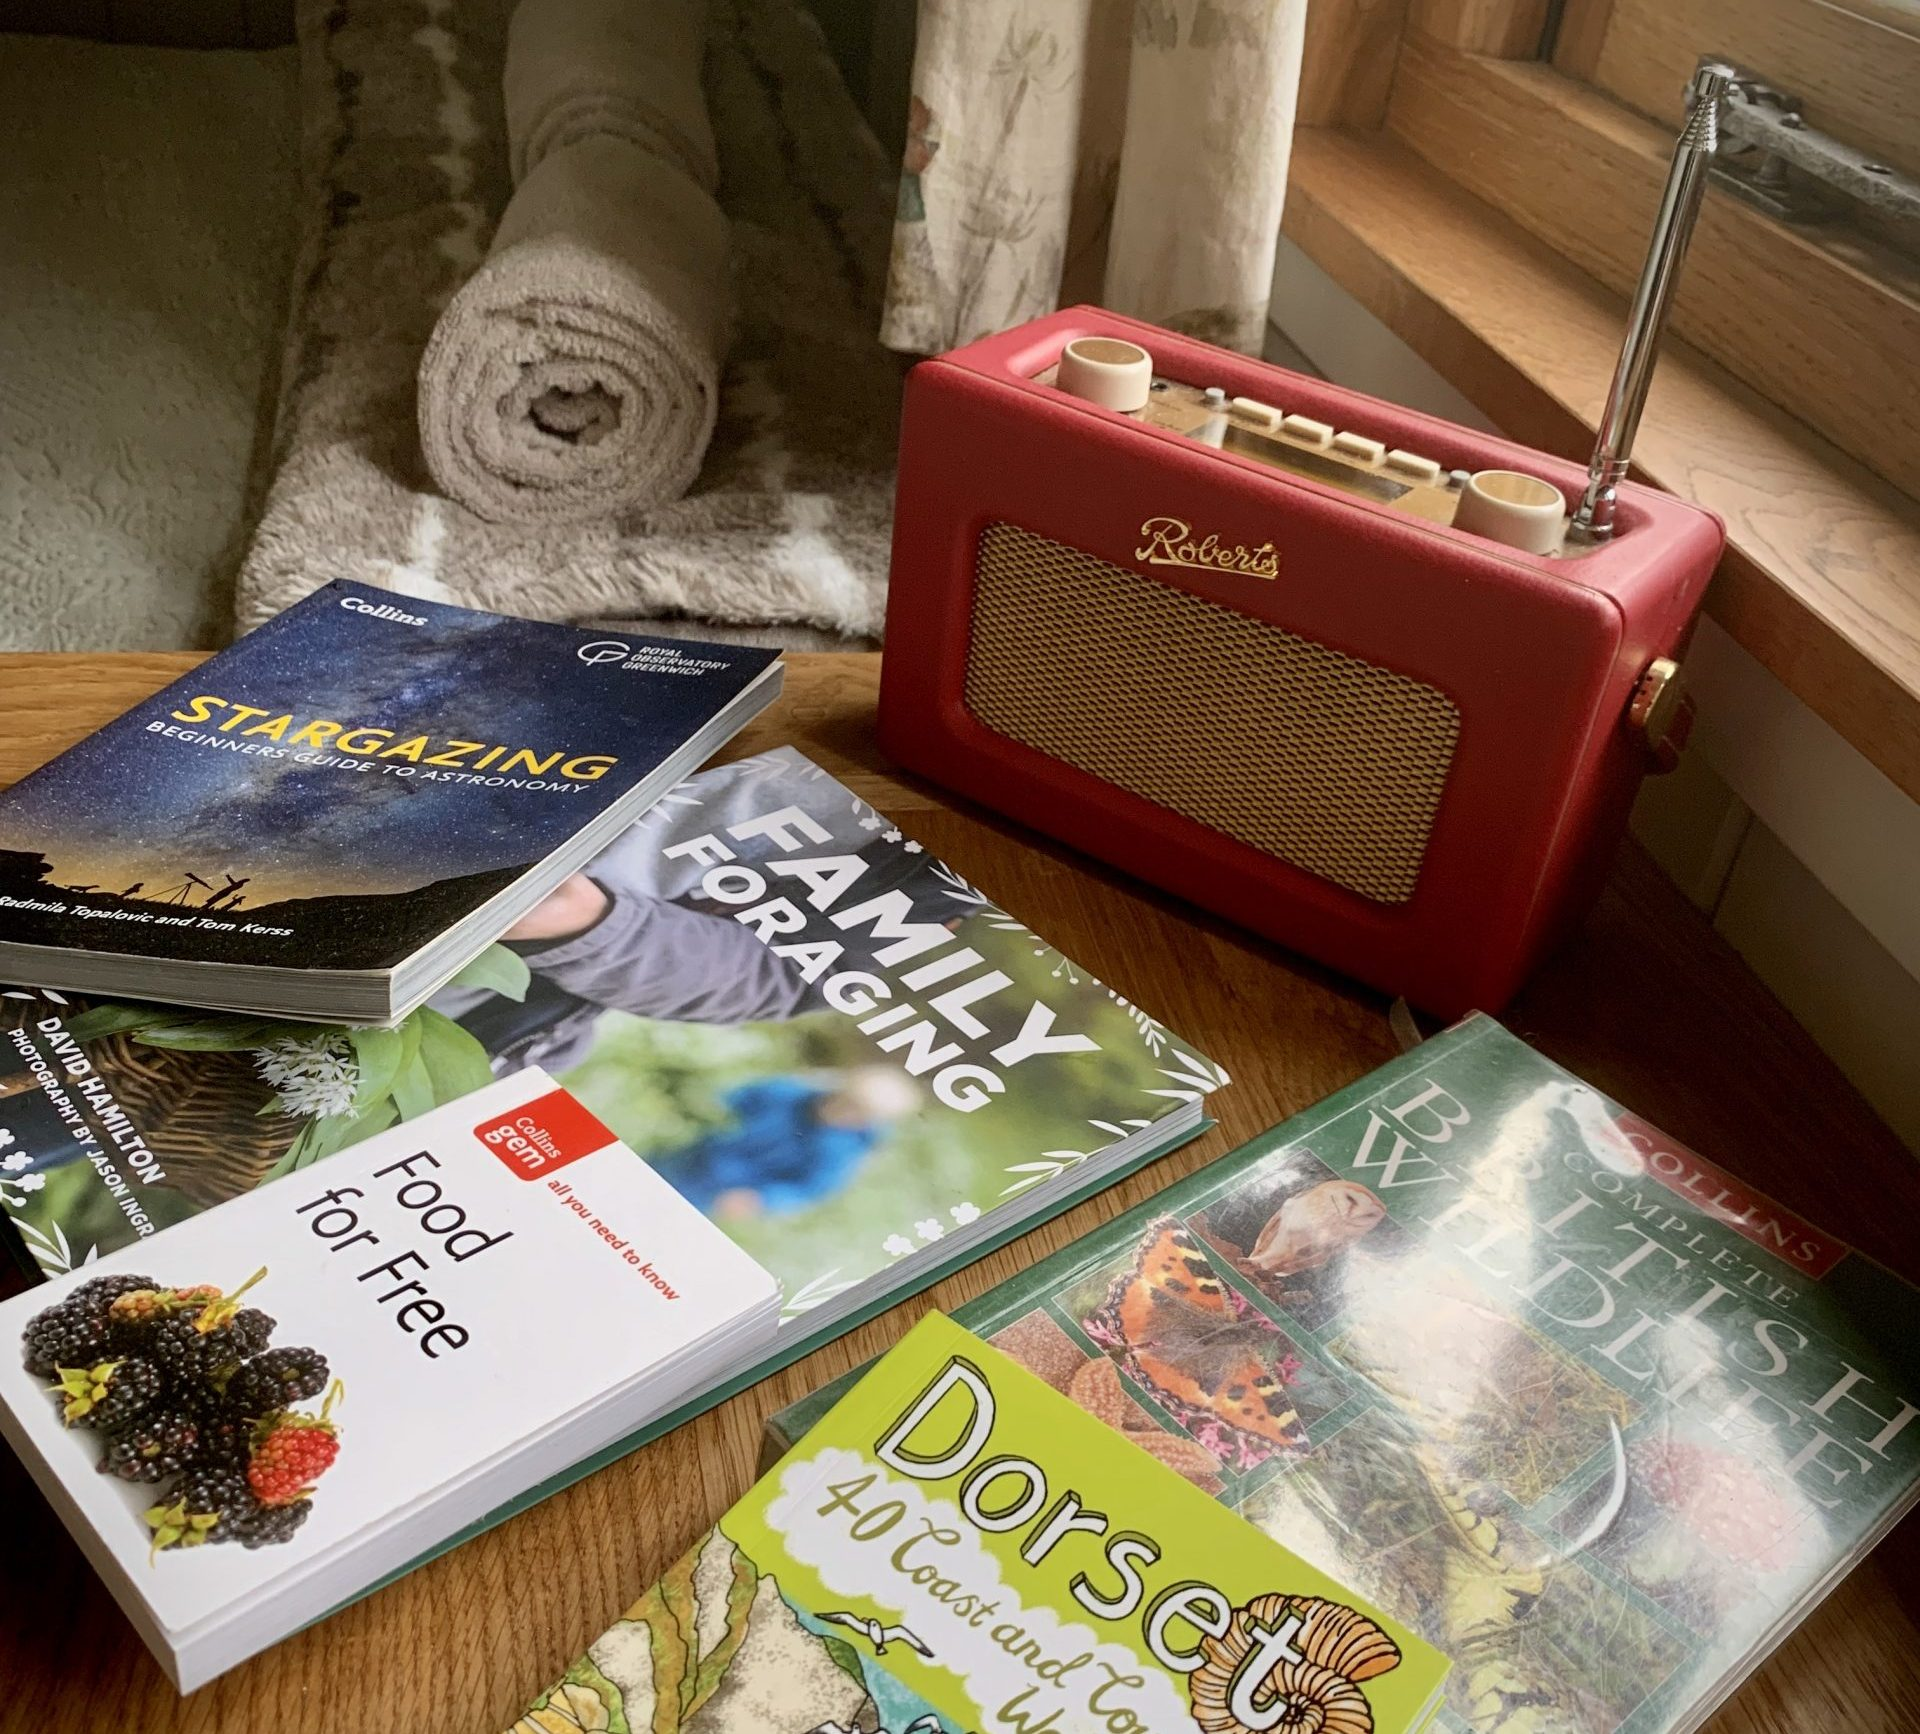 Lots of books on foraging and walking